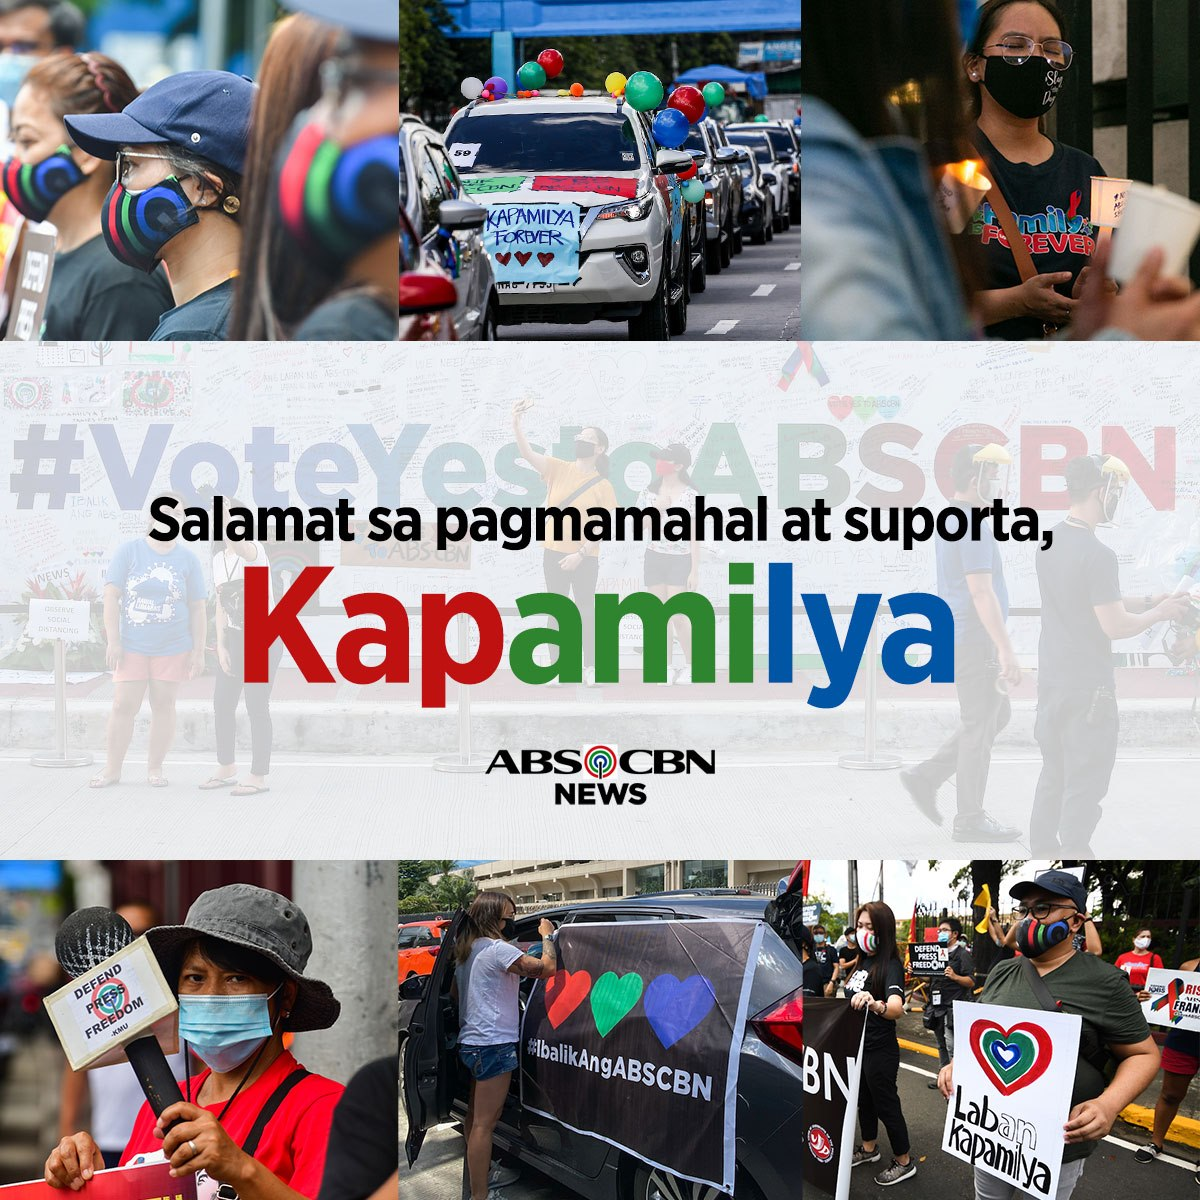 Thank you for fighting with us, Kapamilya. https://t.co/YOgSbmYd9M